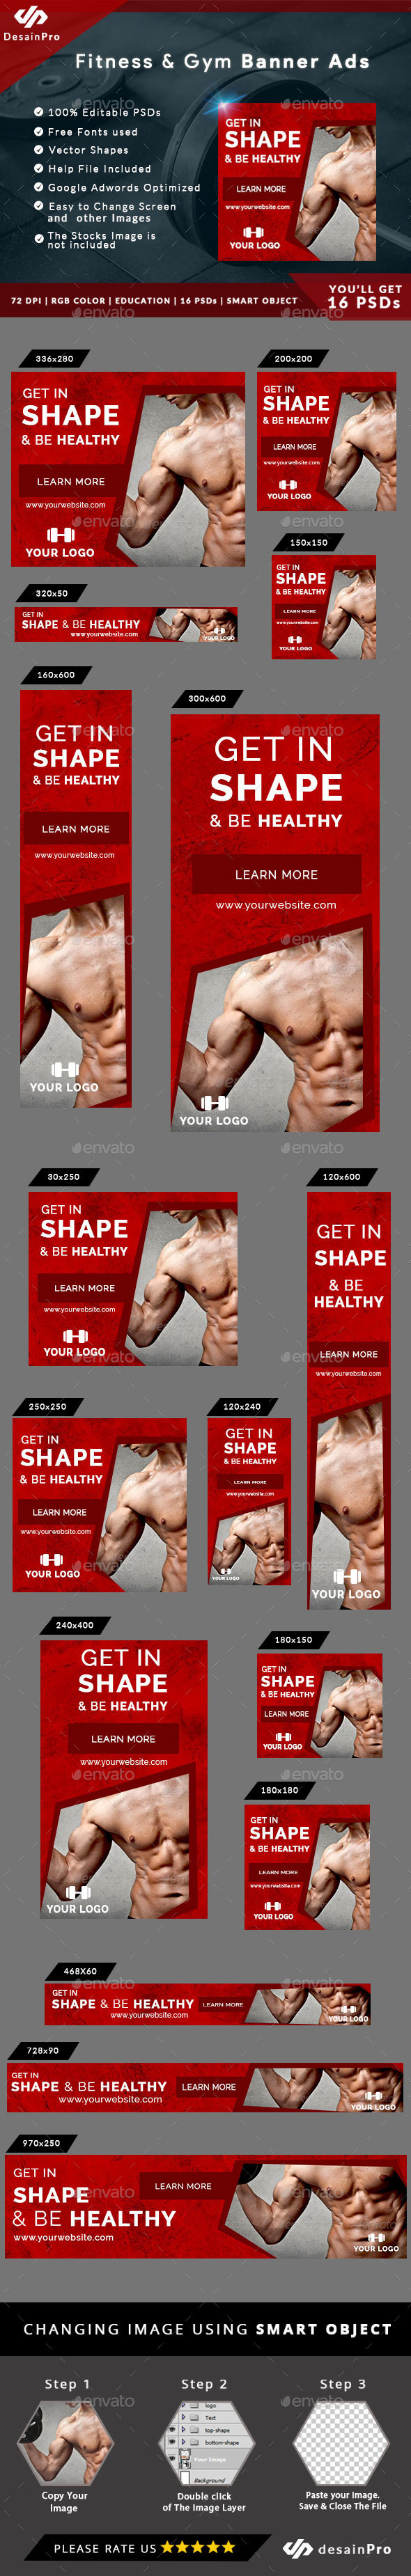 Fitness and Gym Ad Banners - AR - Banners & Ads Web Elements